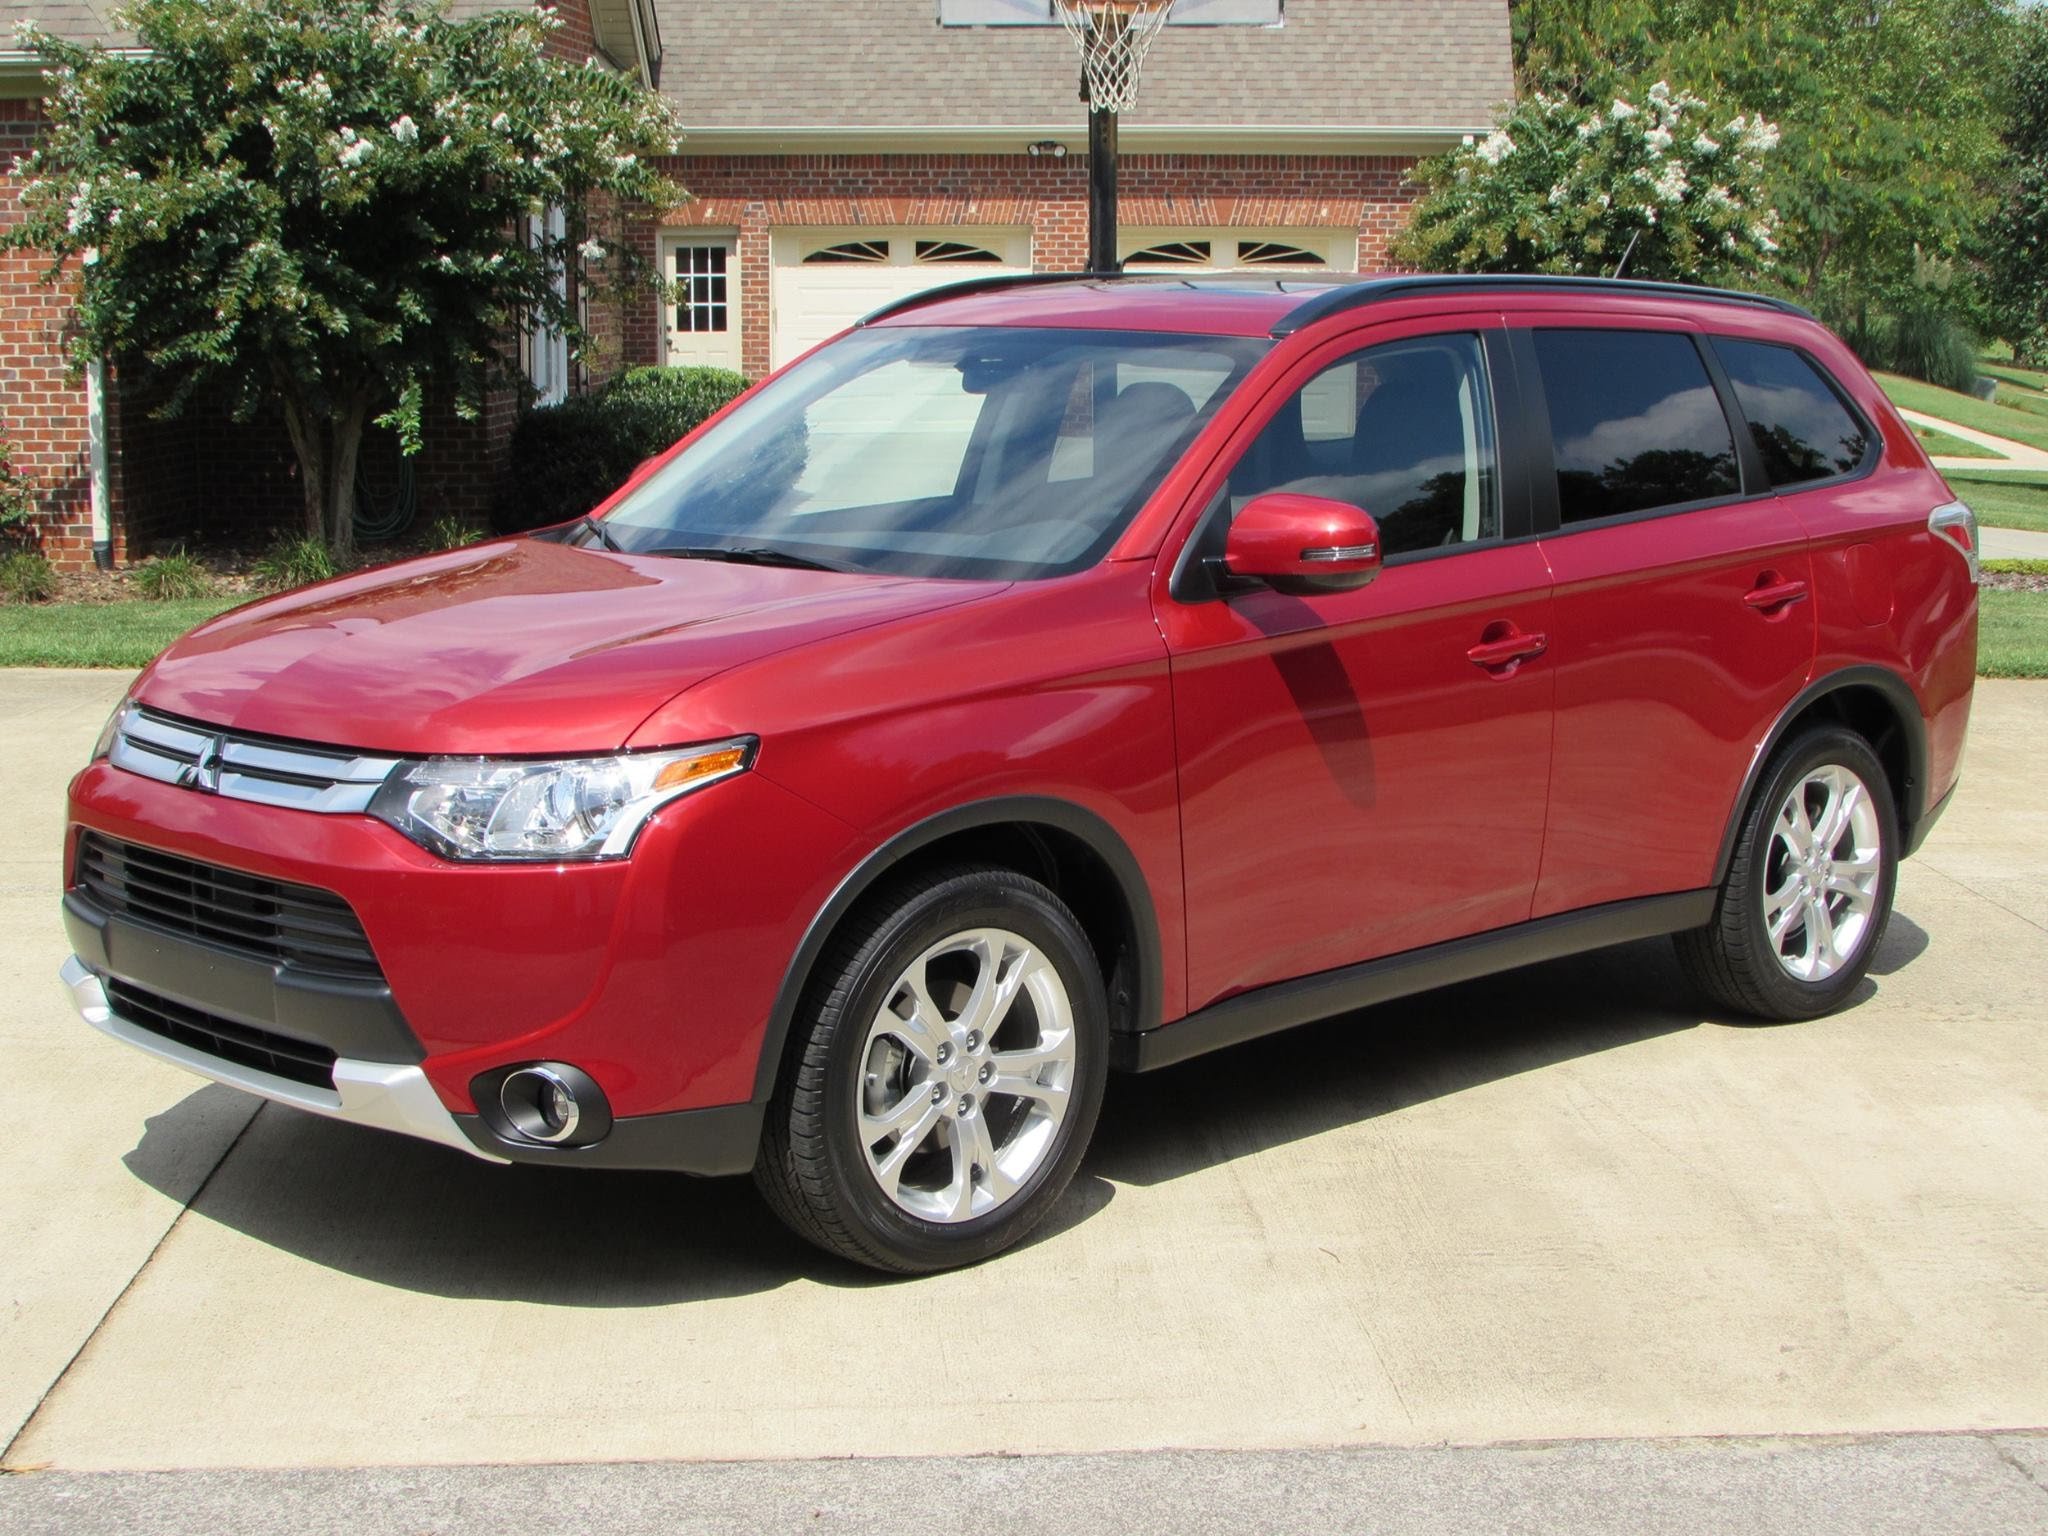 2015 Mitsubishi Outlander Car Review Video